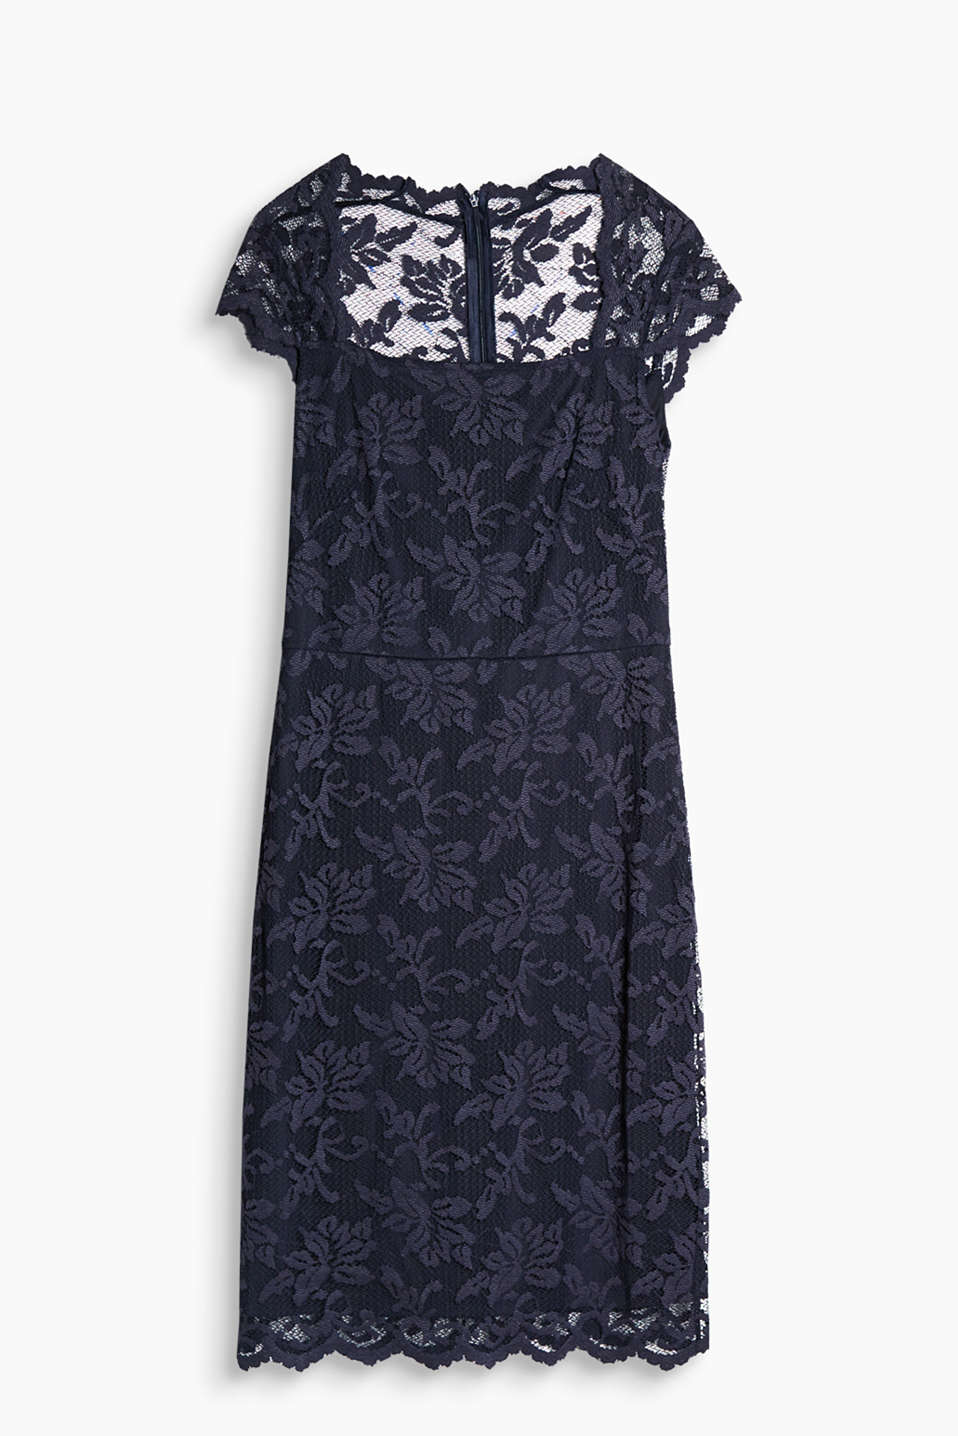 Soft lace dress with added stretch for comfort and a charming square neckline